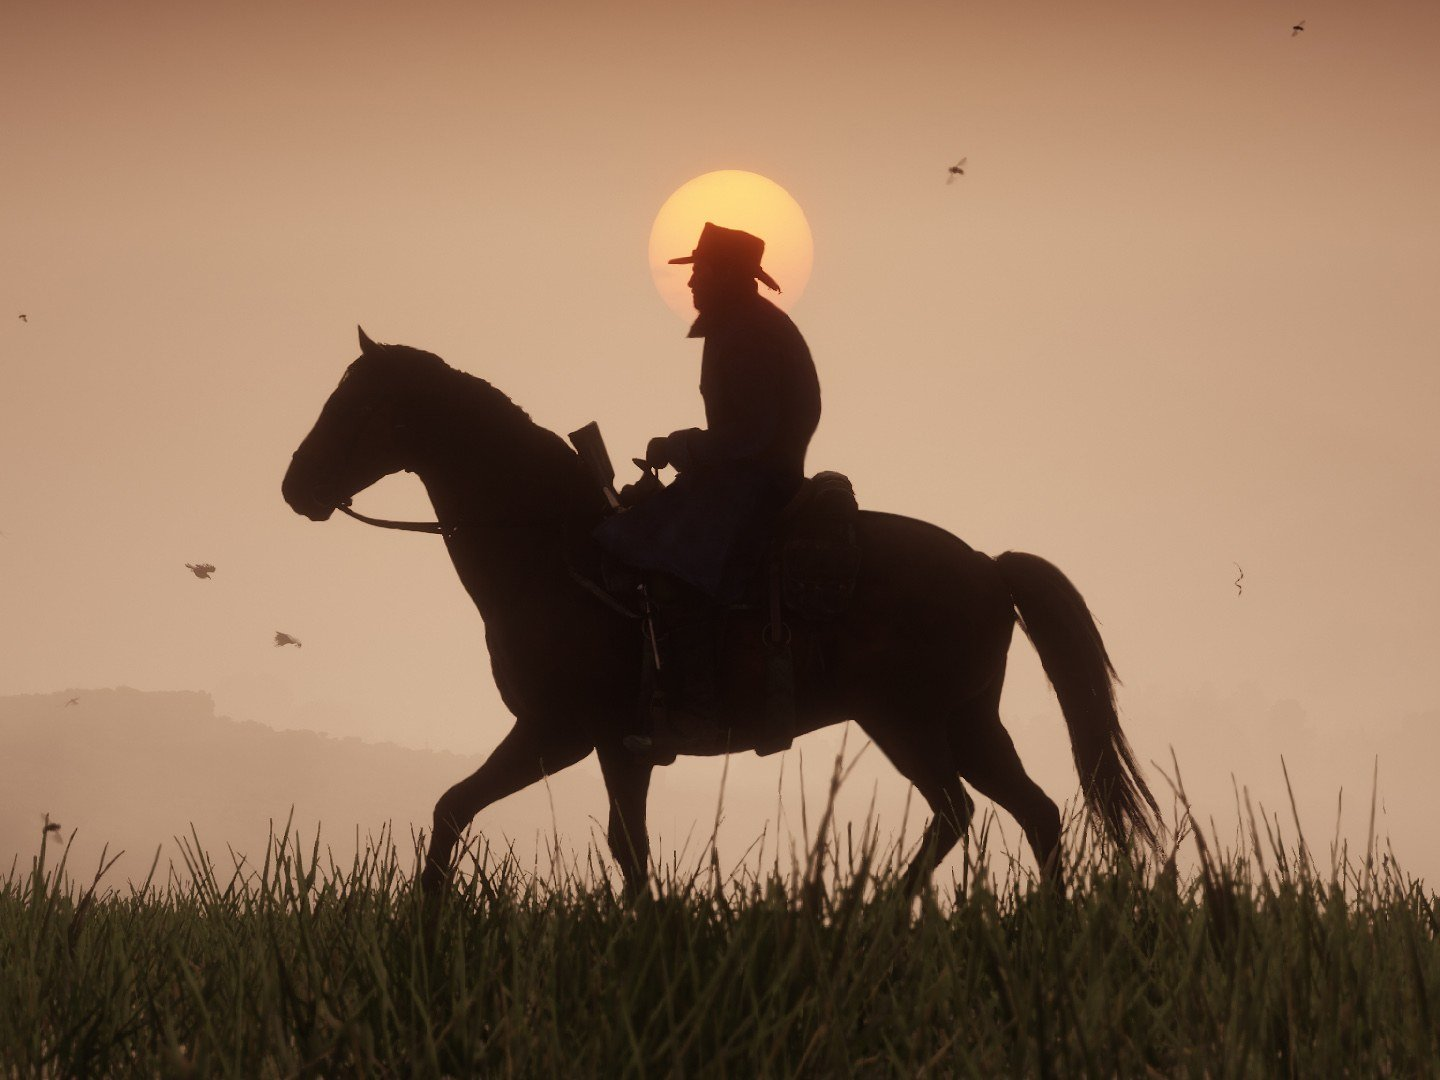 Arthur riding a horse. Horse Guide for Red Dead Redemption 2